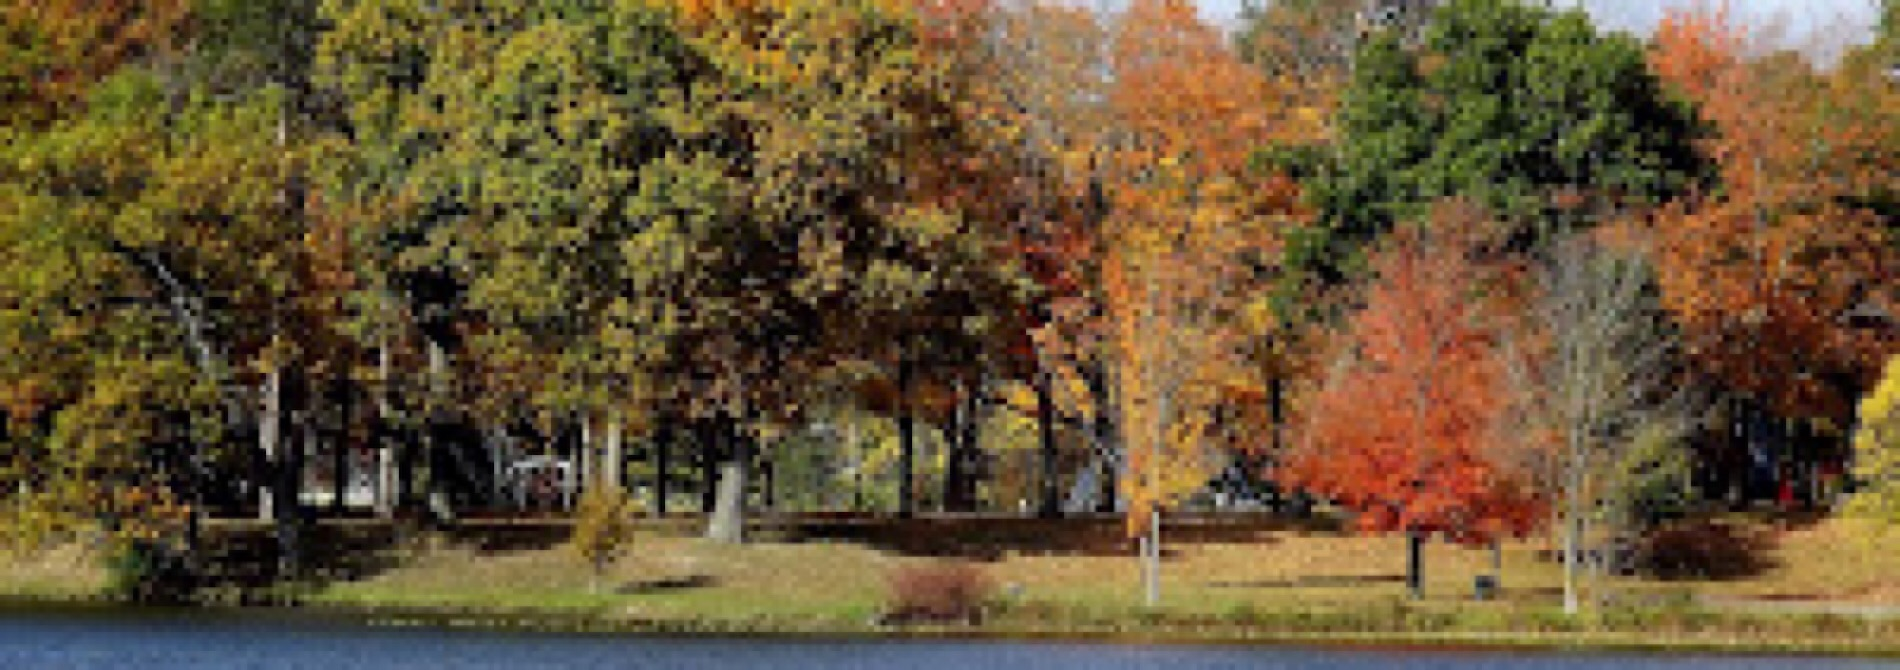 colorful fall colors forest scene